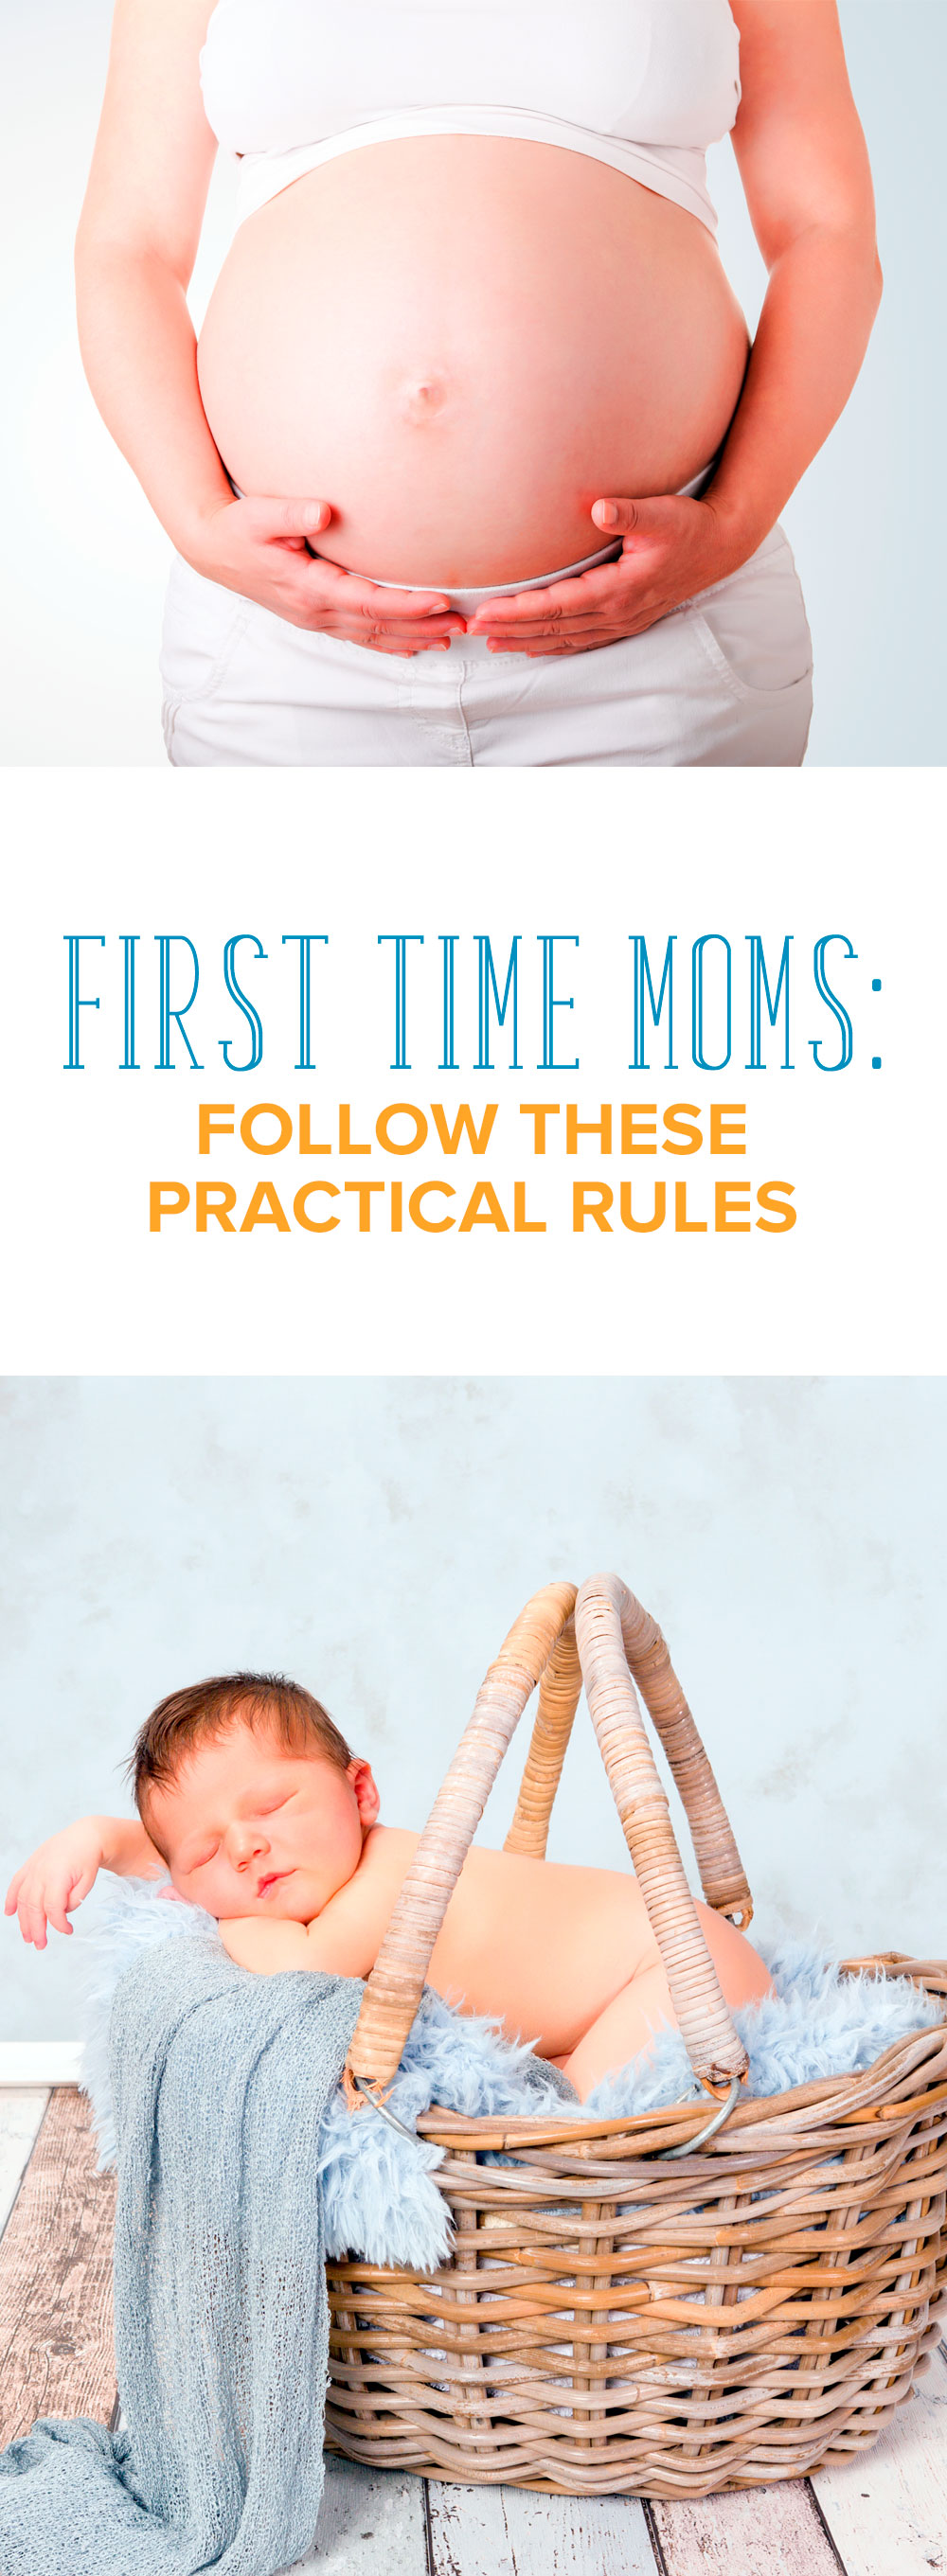 Are you pregnant and a first time mommy to be? Read practical advice first time moms need to hear from other been-there, done-that moms.